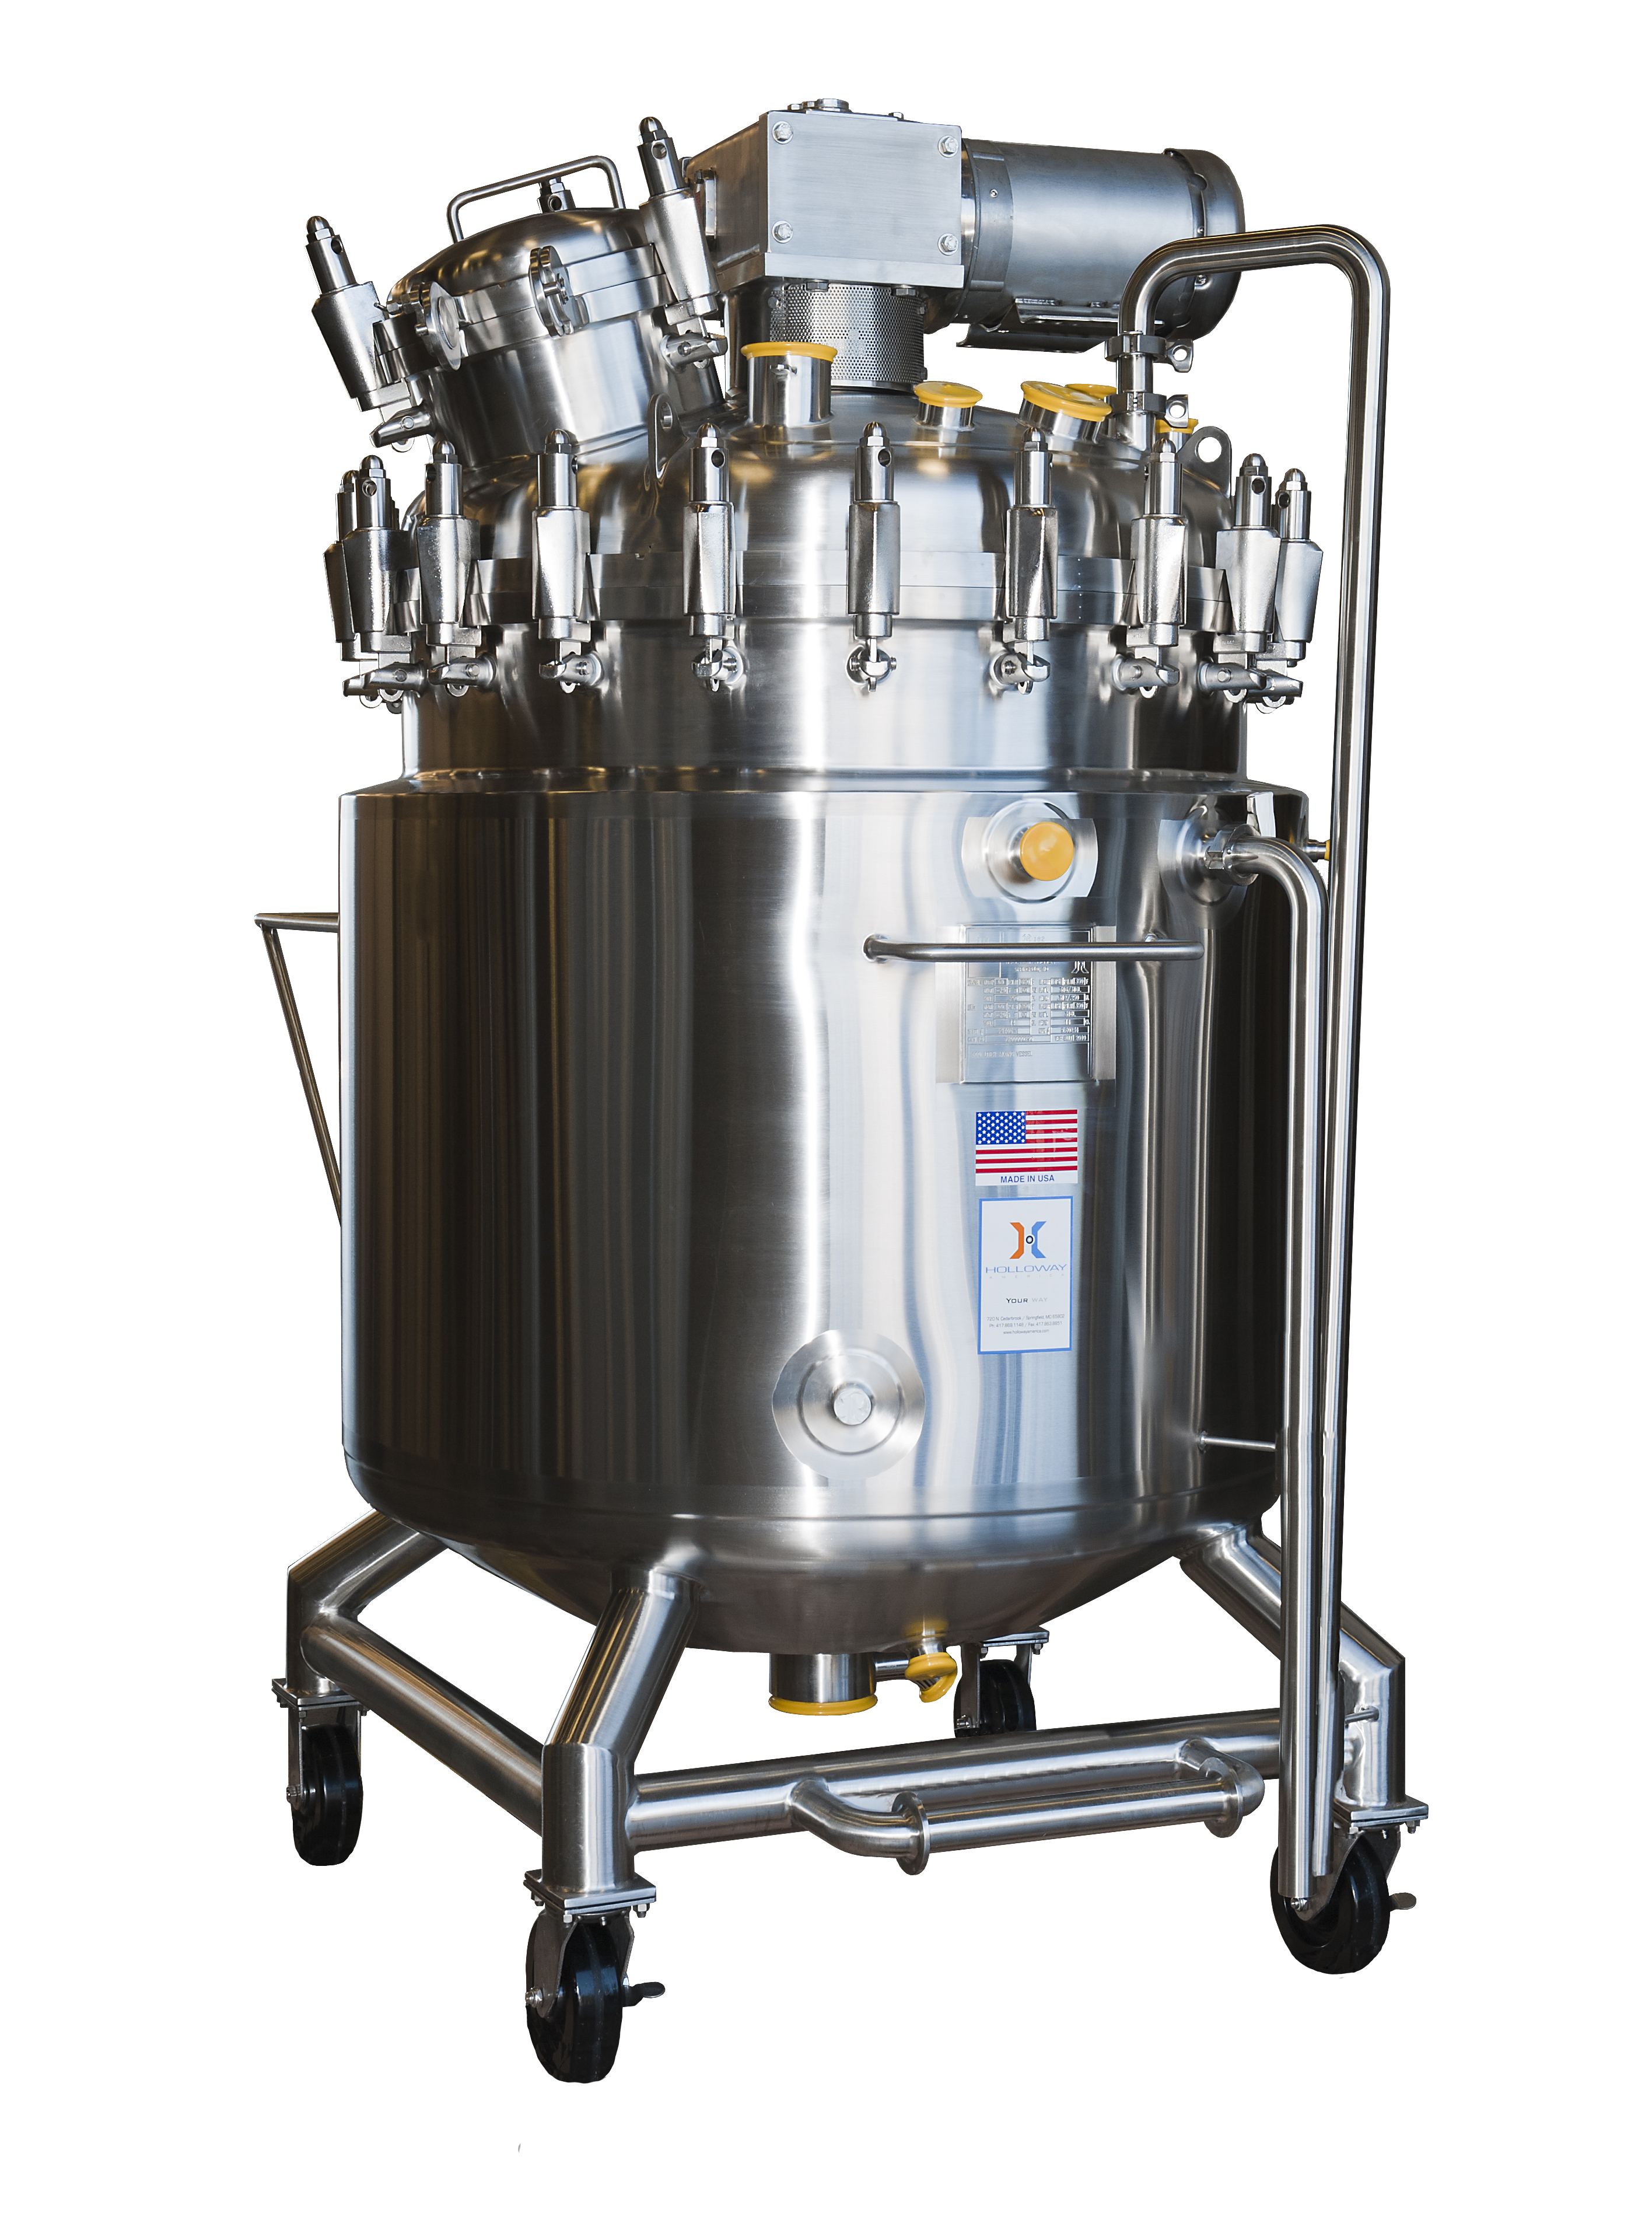 This ASME mixer tank was built to the ASME pressure vessels code.